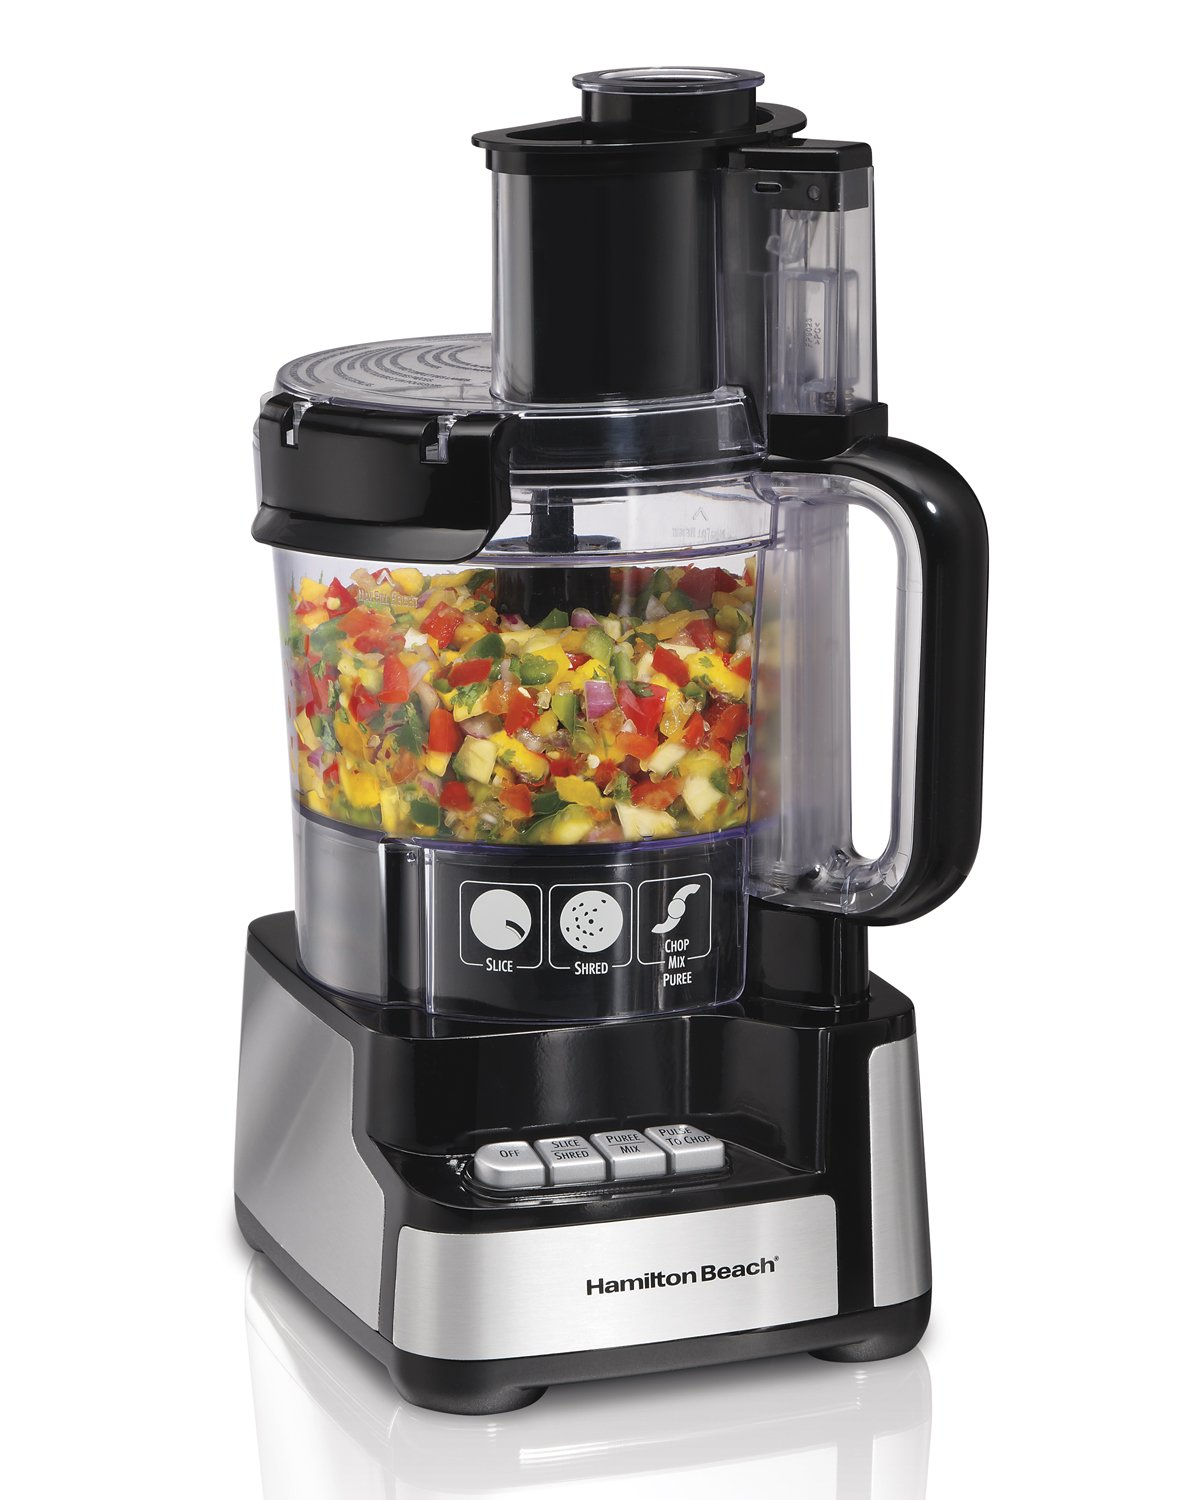 Hamilton Beach 12-Cup Stack and Snap Food Processor 70725A